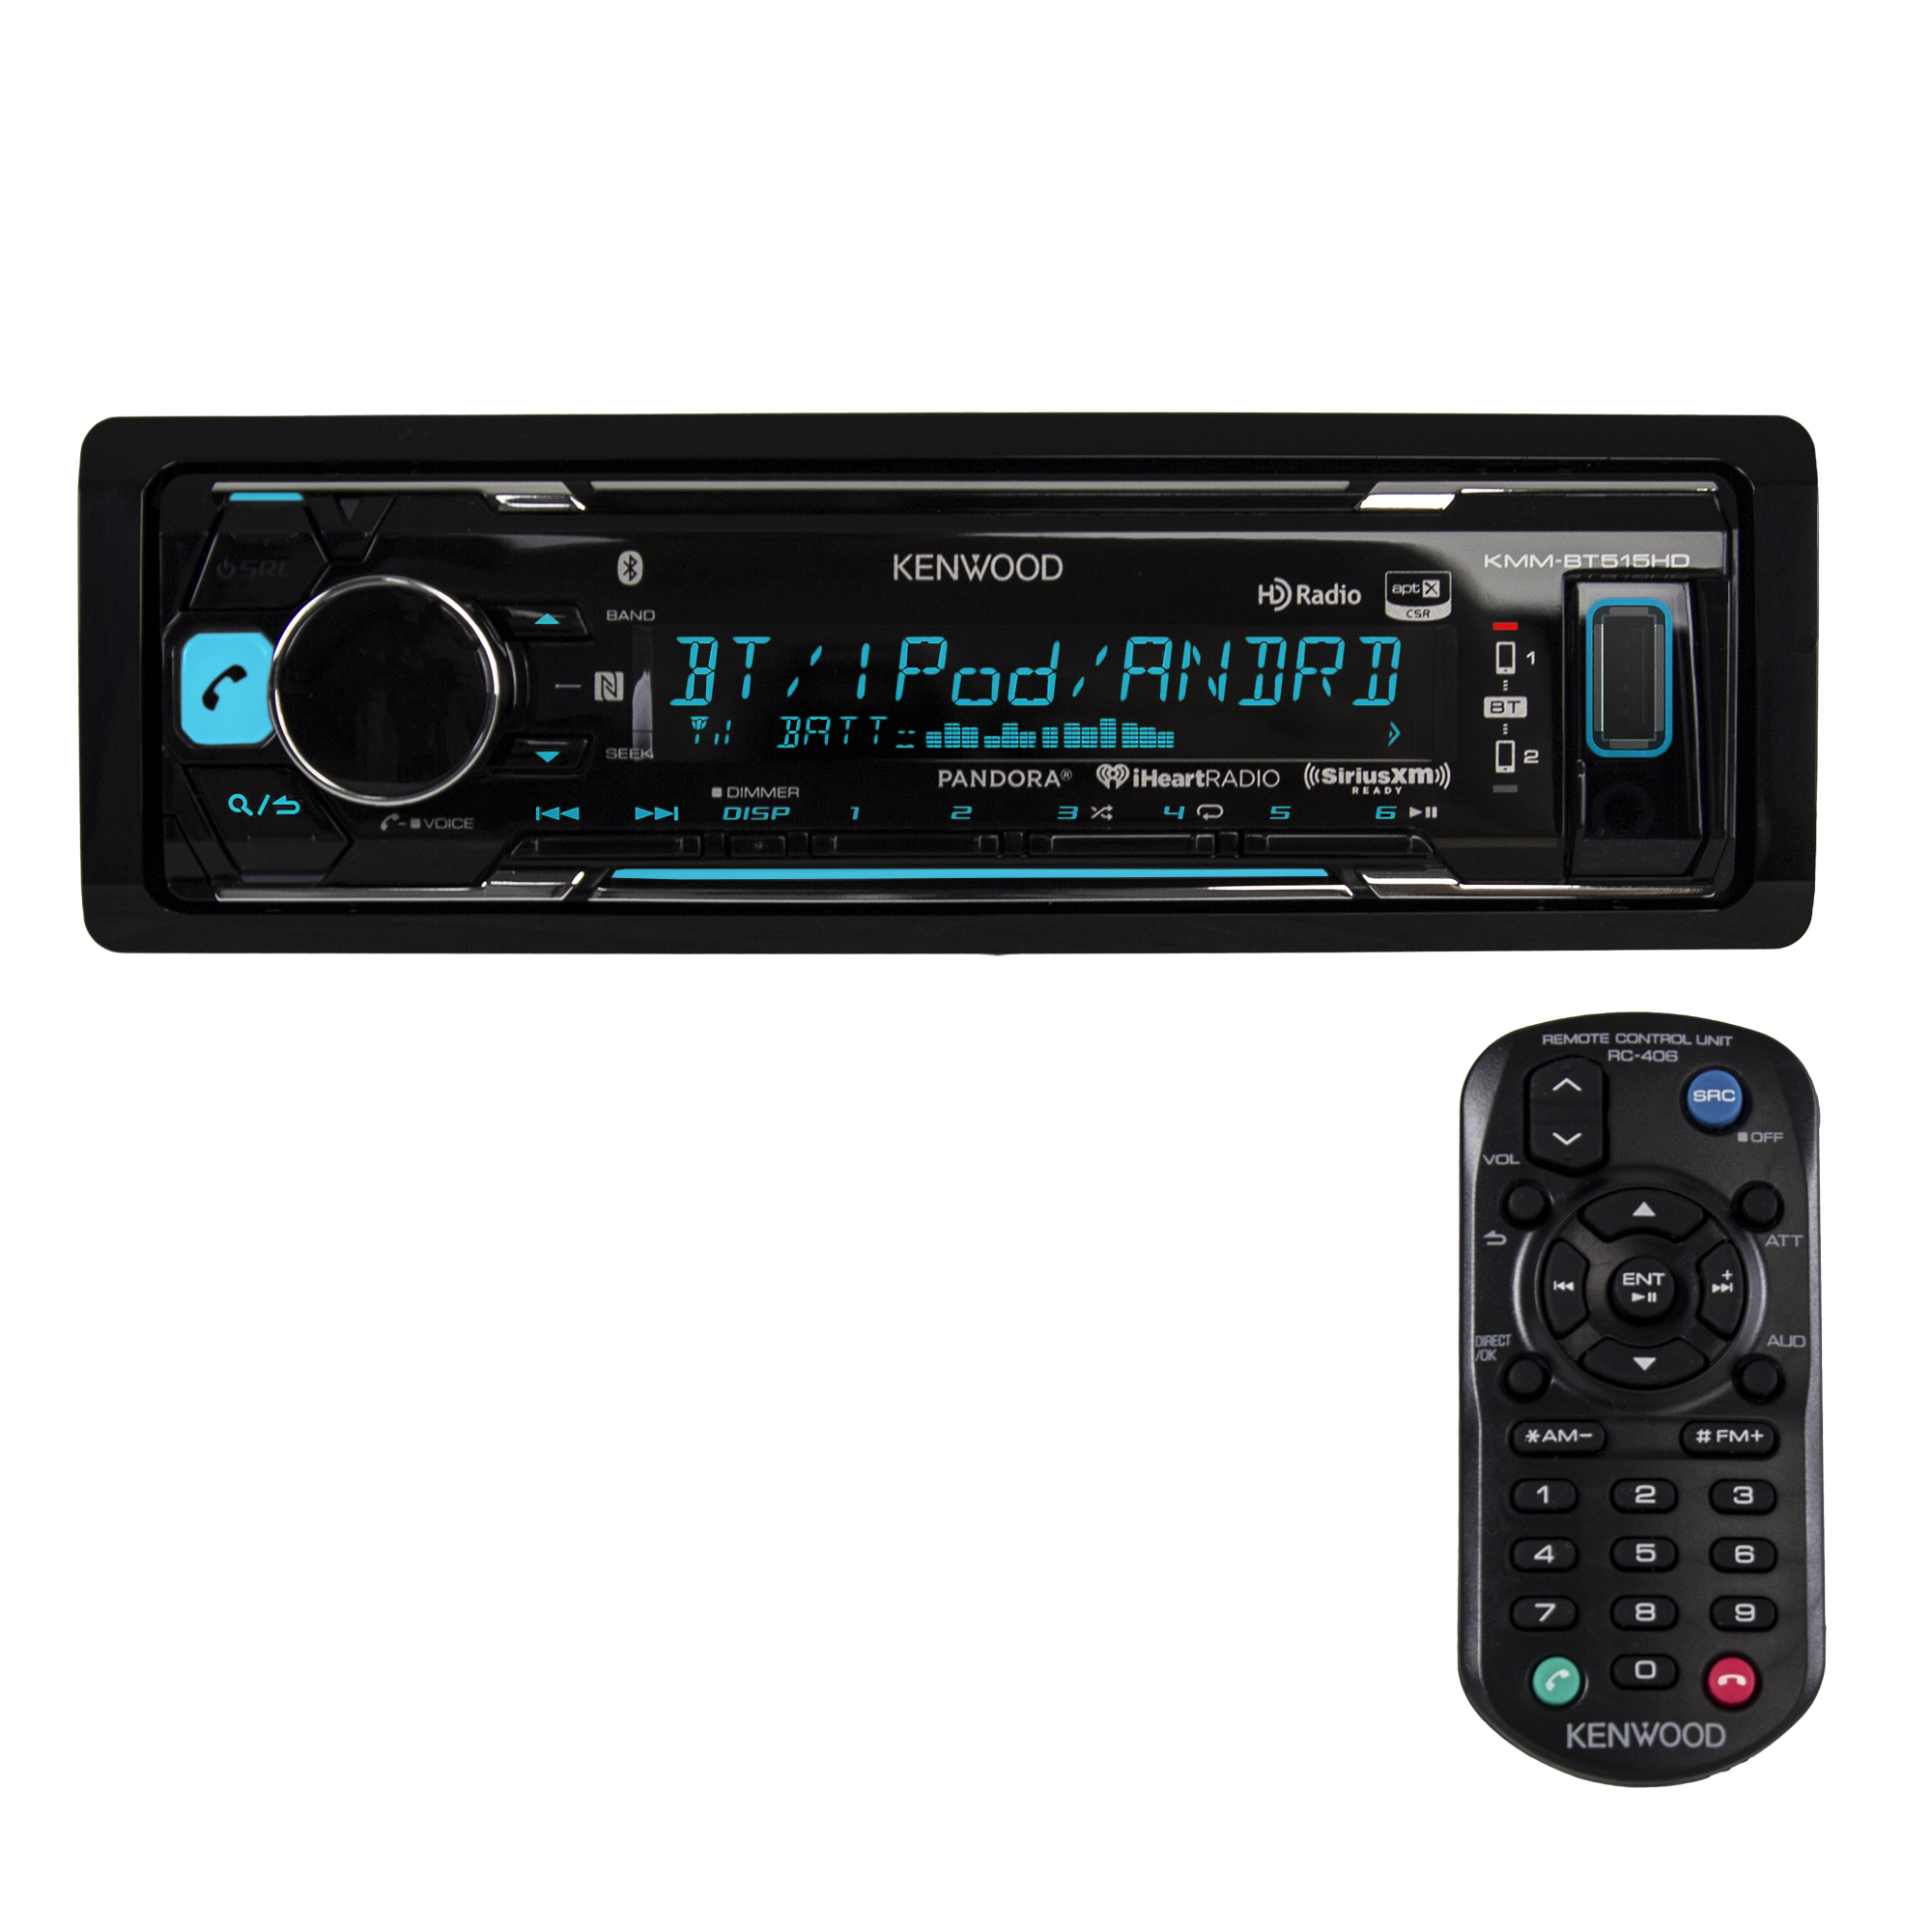 Kenwood KMM-BT515HD Single-DIN In-Dash Mechless Receiver with Bluetooth, HD Radio and SiriusXM Ready by Kenwood